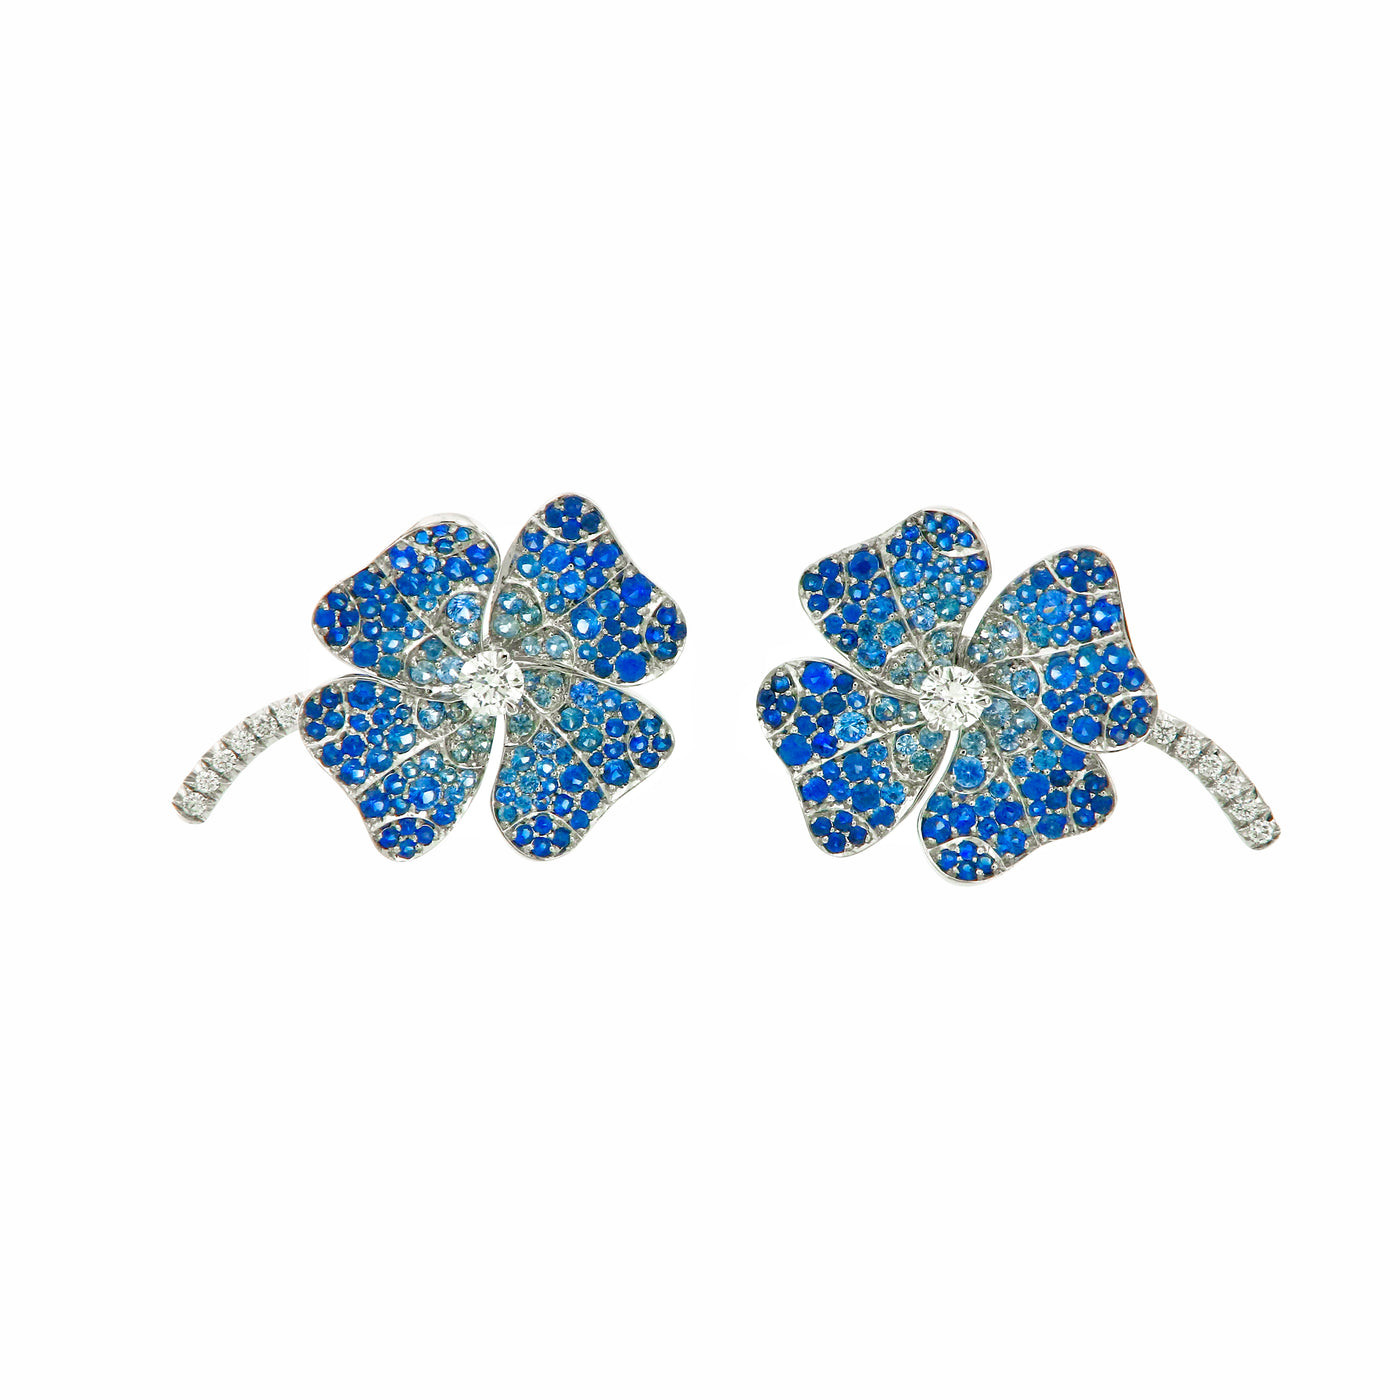 Earrings White Gold with White Diamonds and Blue Sapphires (Big)